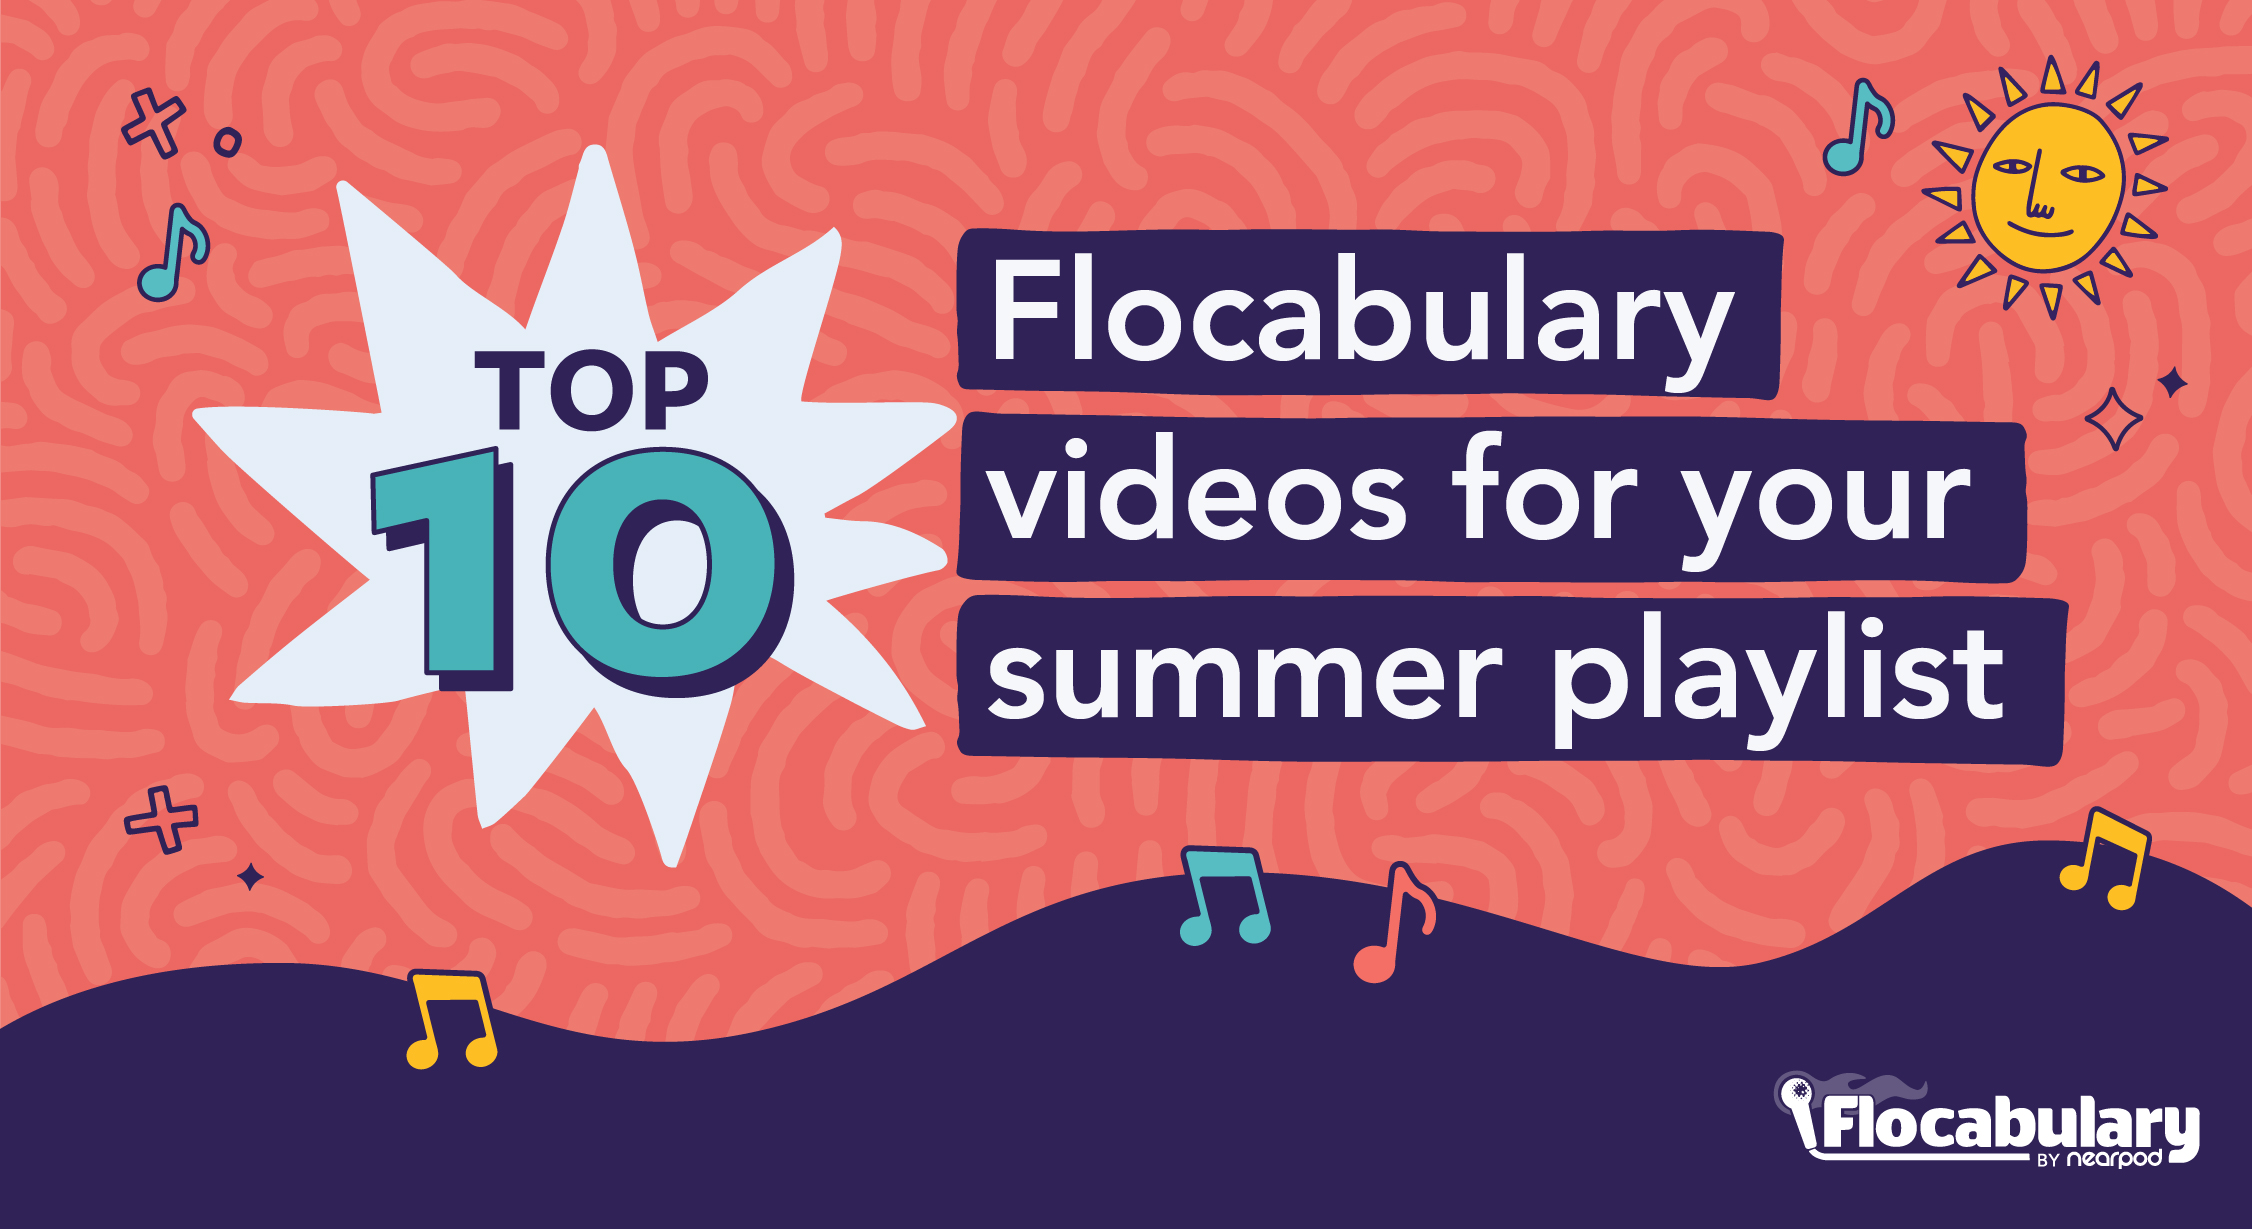 Top 10 Flocabulary Videos For Your Summer Playlist Blog